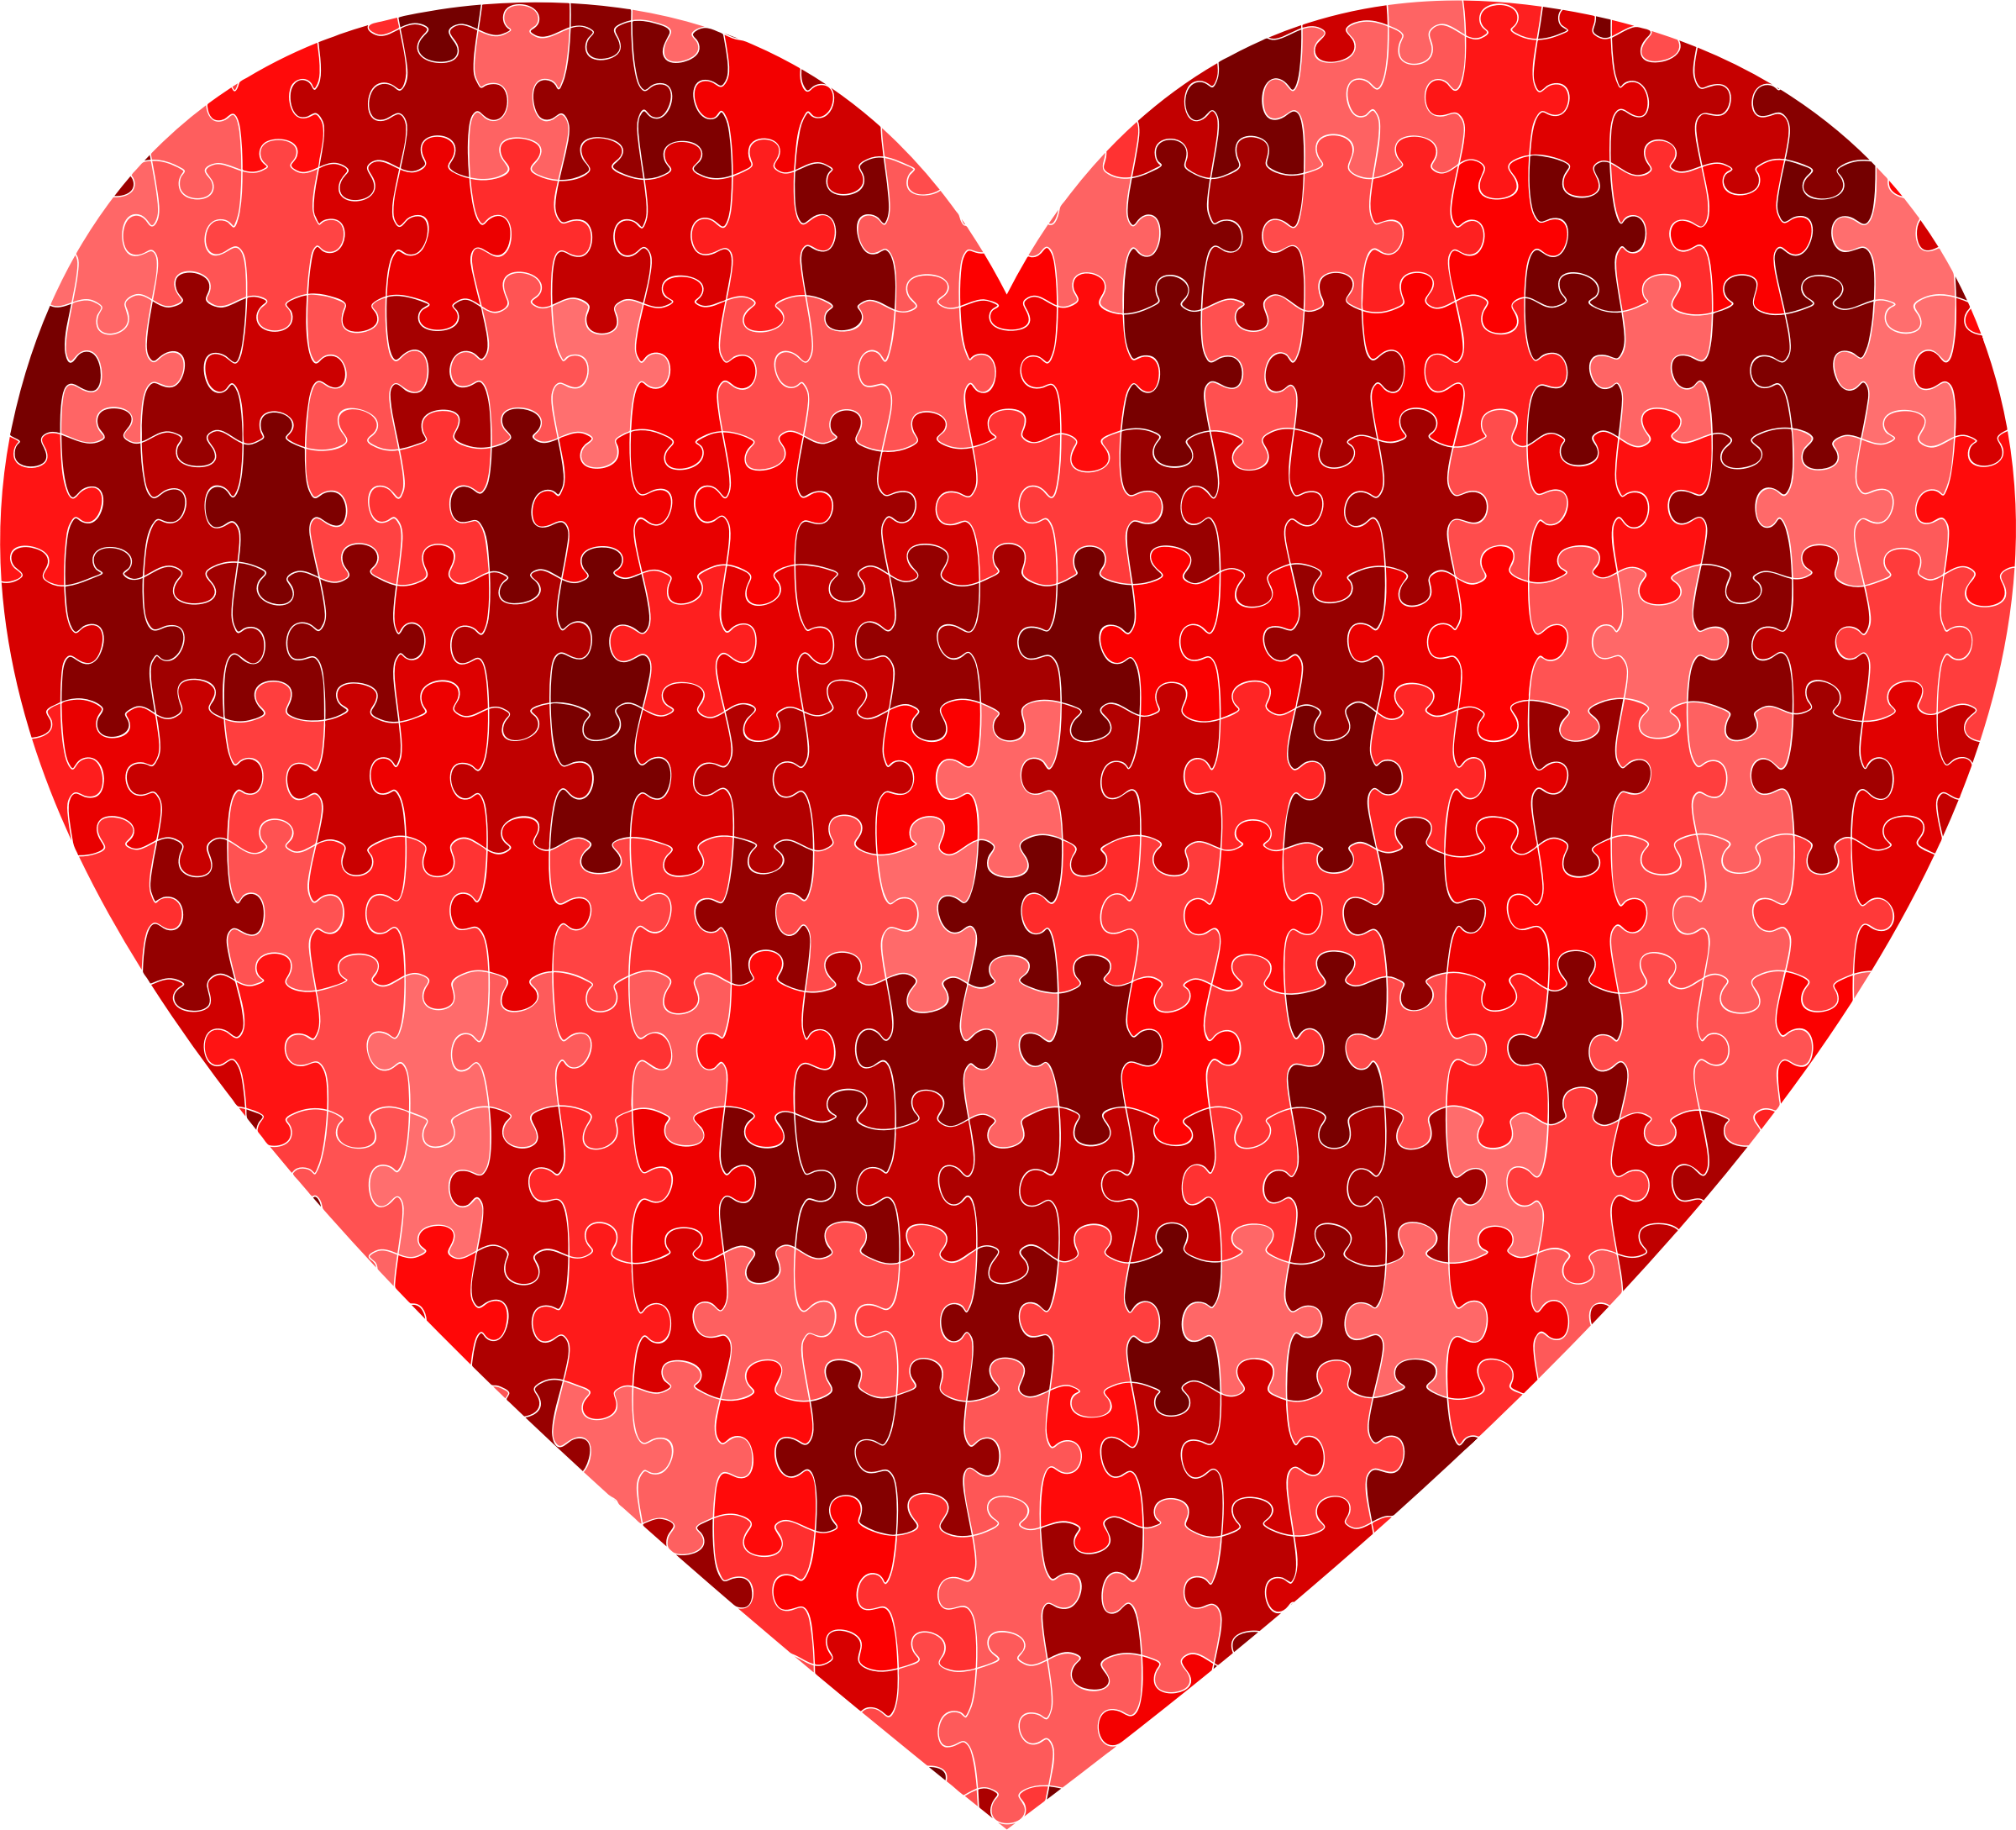 Puzzle heart clipart banner royalty free download Clipart - Red puzzle heart banner royalty free download